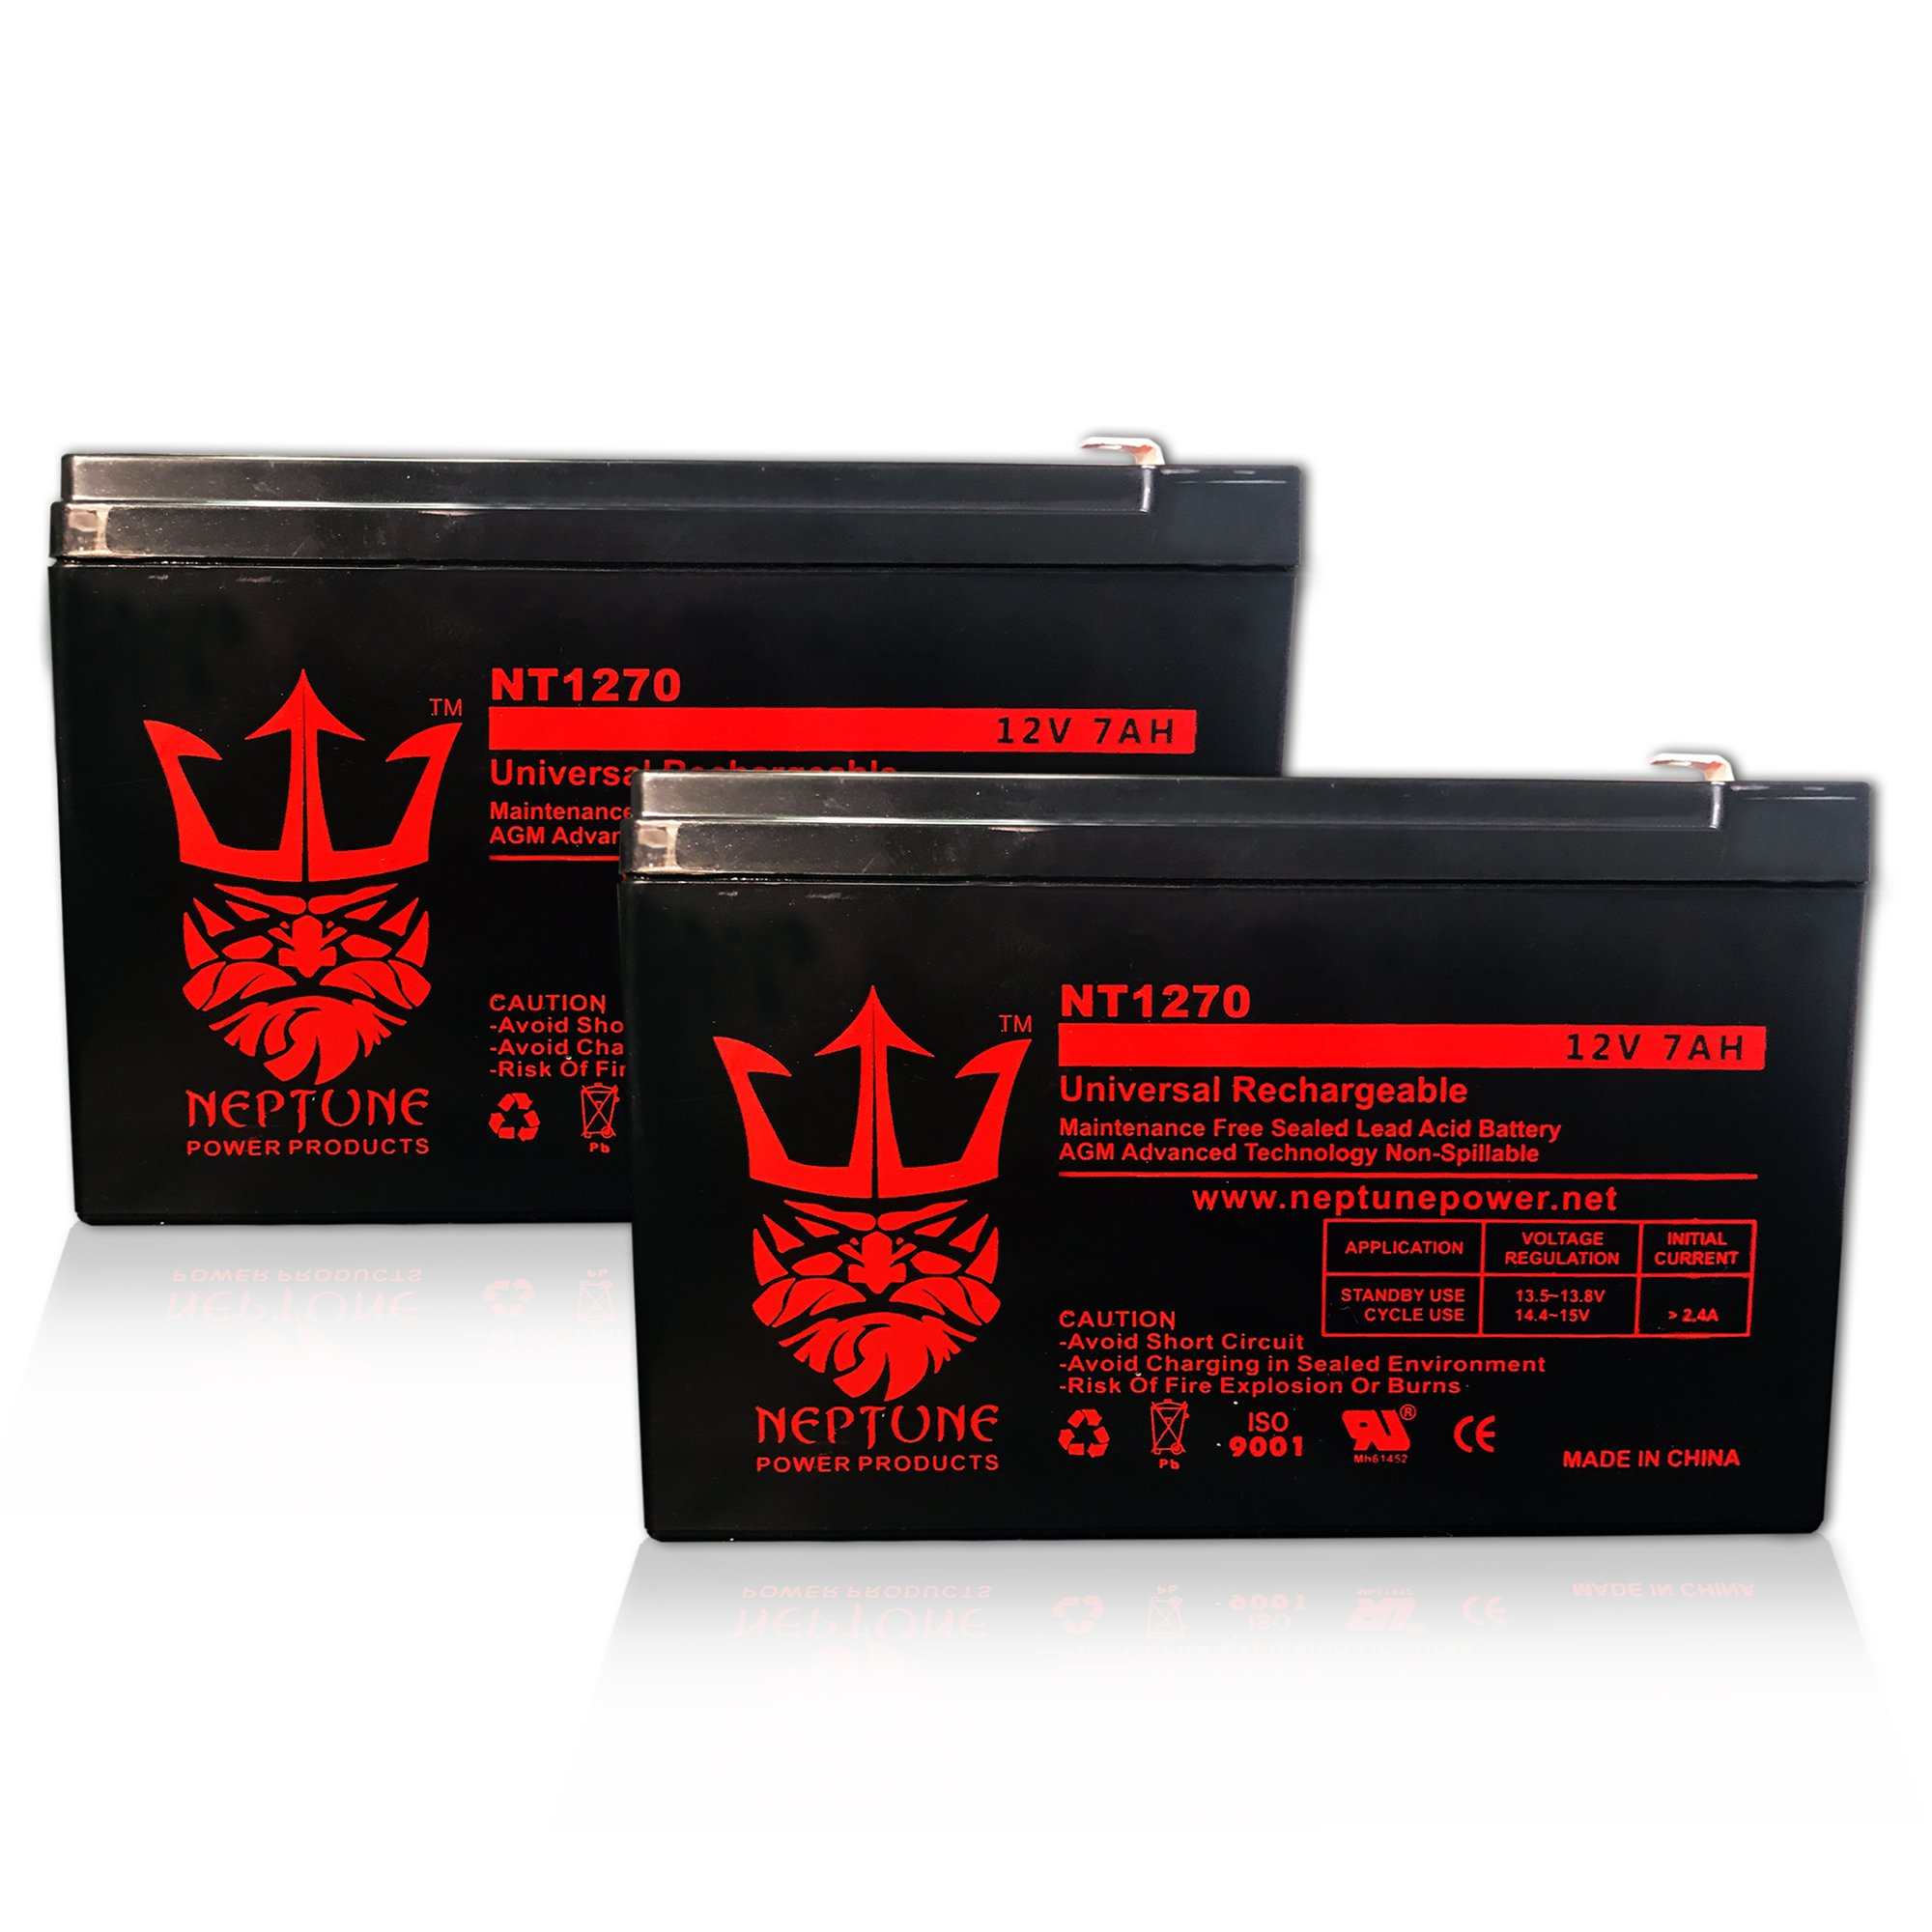 12V 7Ah Replacement Battery FM150 / GTO Gate Openers NT1270 by Neptune - 2 Pack